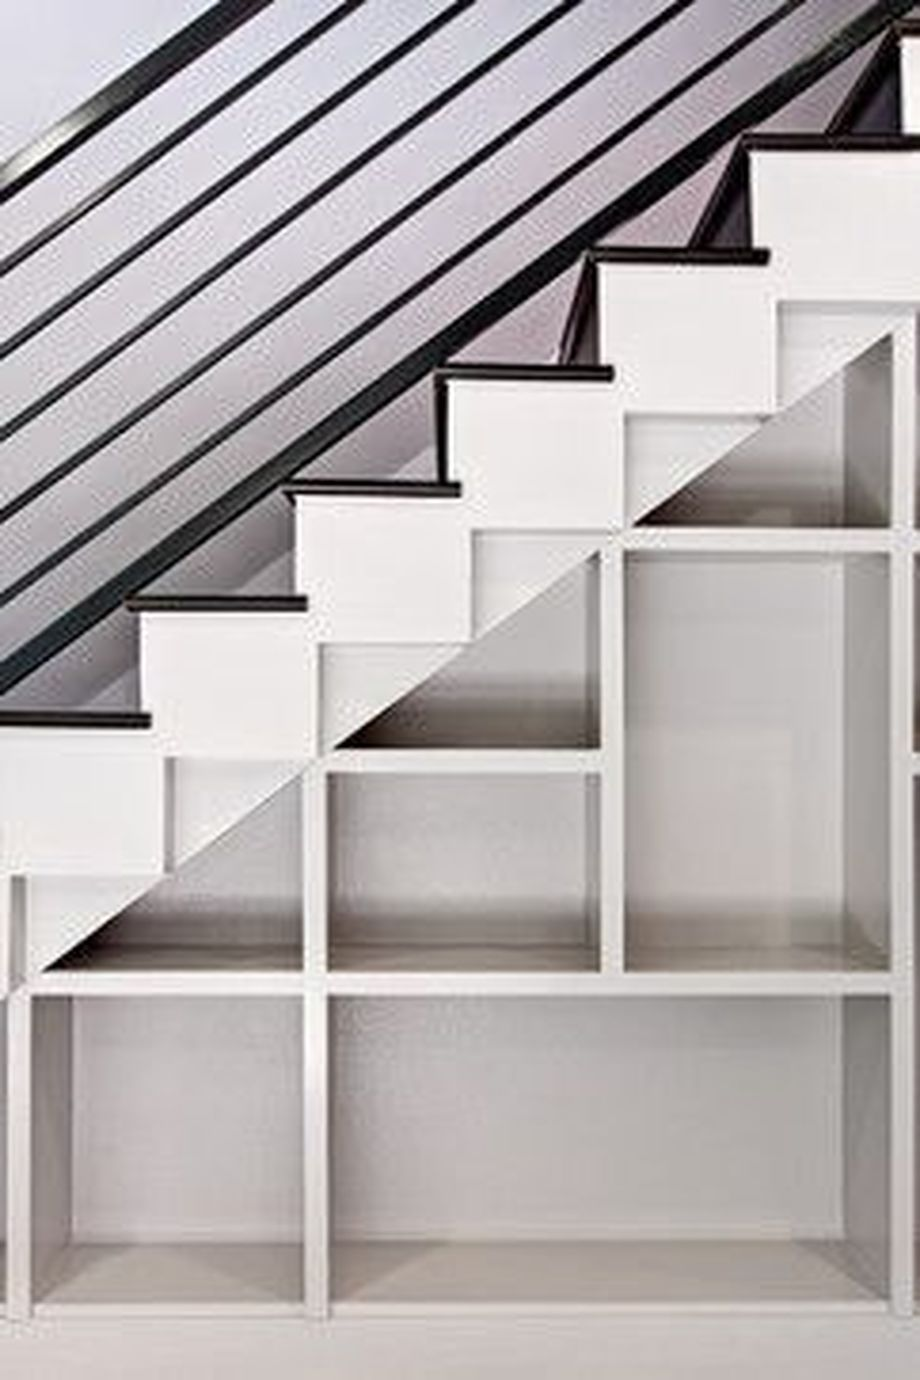 Best 90 Cool Ideas To Make Or Remodel Storage Under Stairs 400 x 300